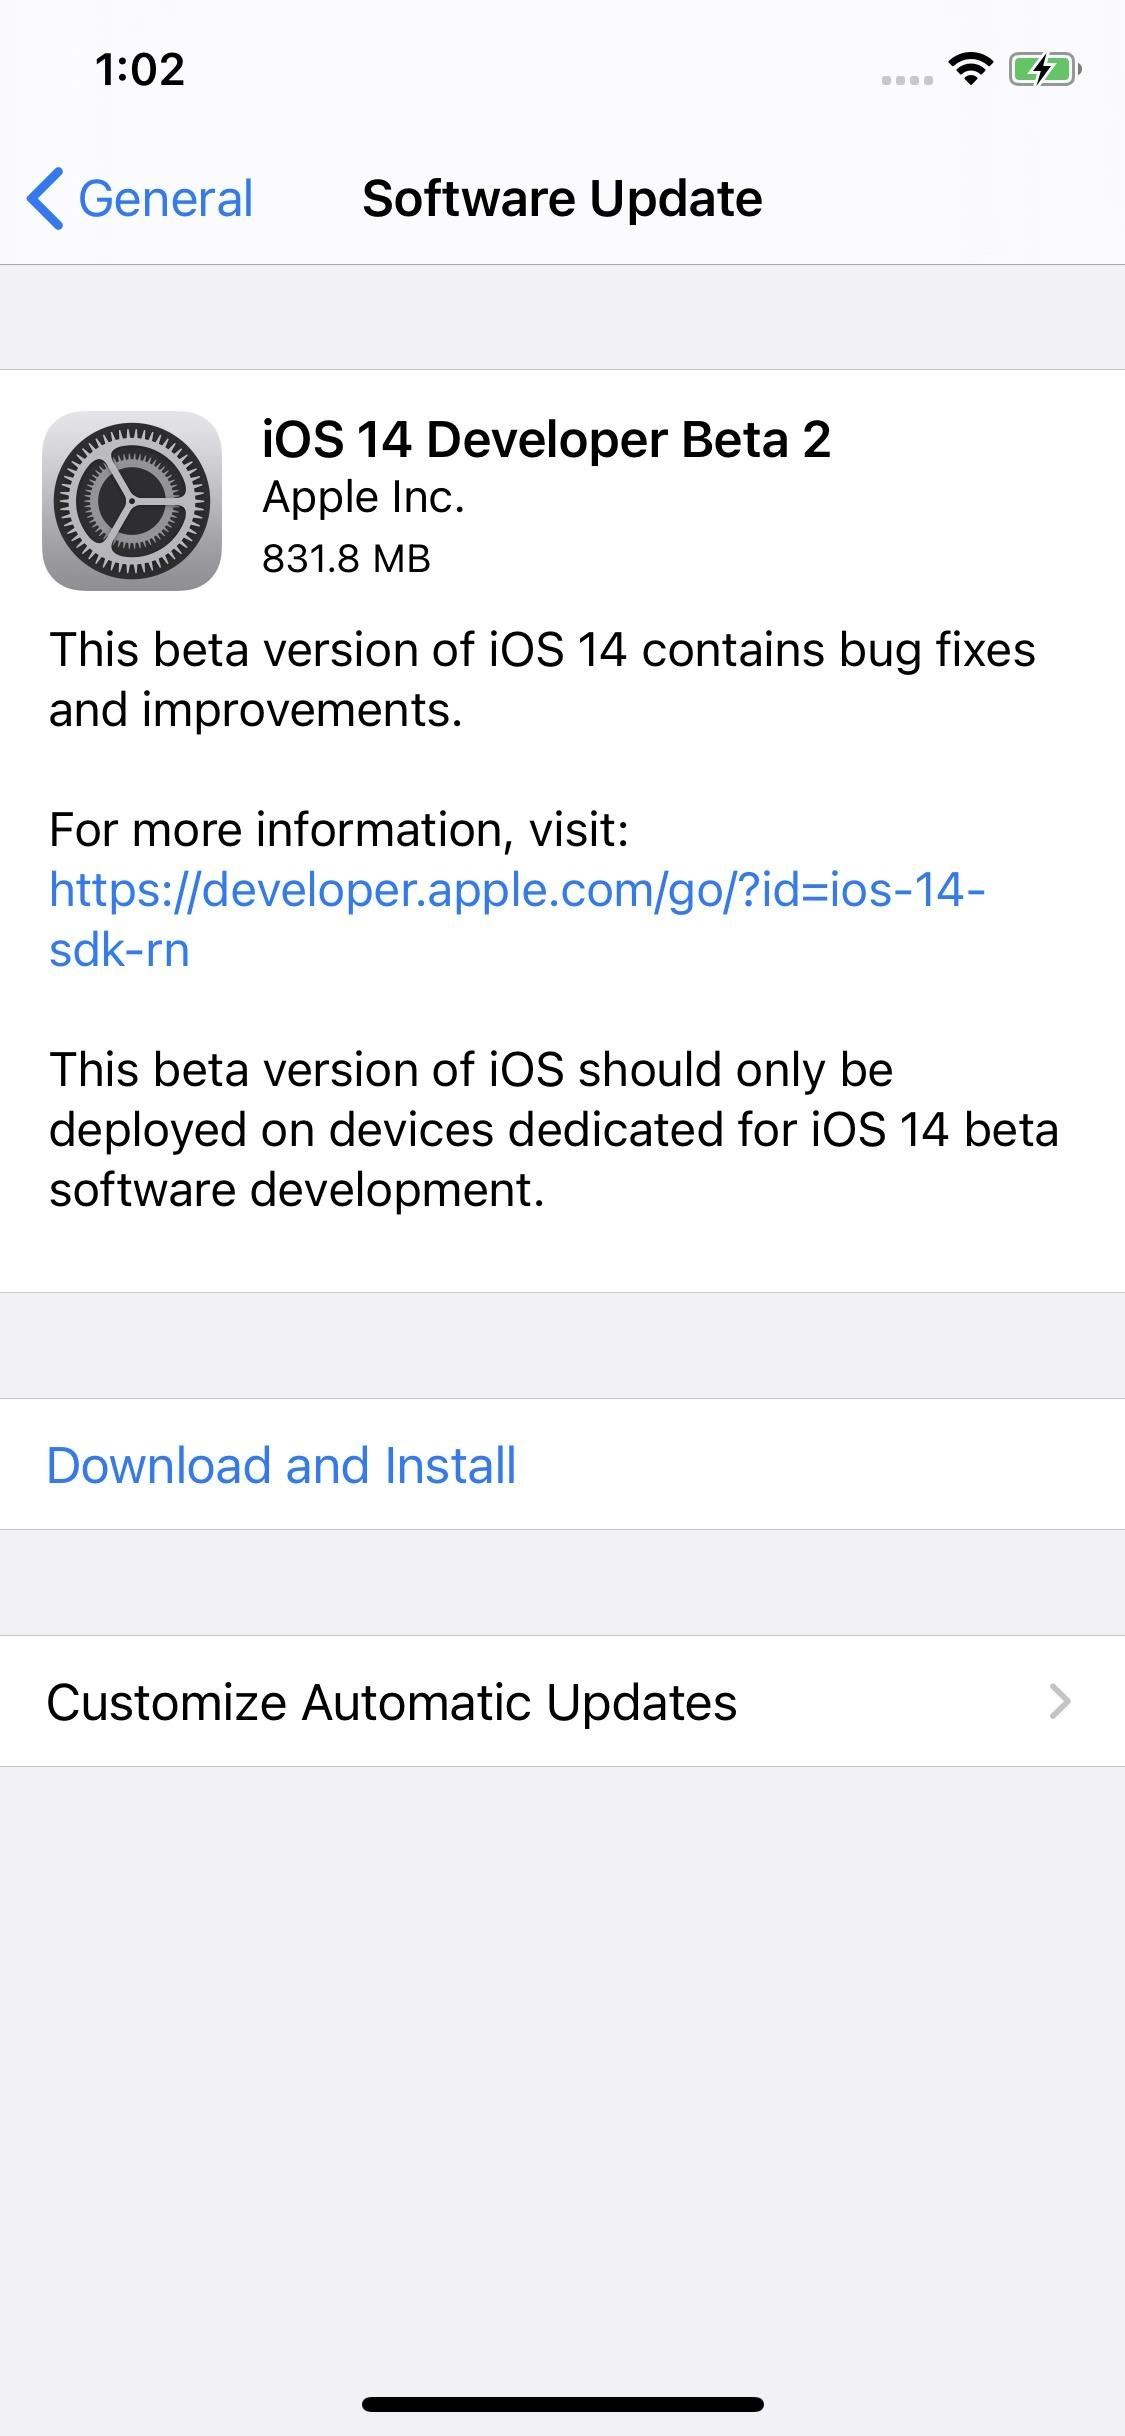 Apple's iOS 14 Developer Beta 2 for iPhone Introduces System-Wide UI Changes, Haptic Feedback Music Controls & More